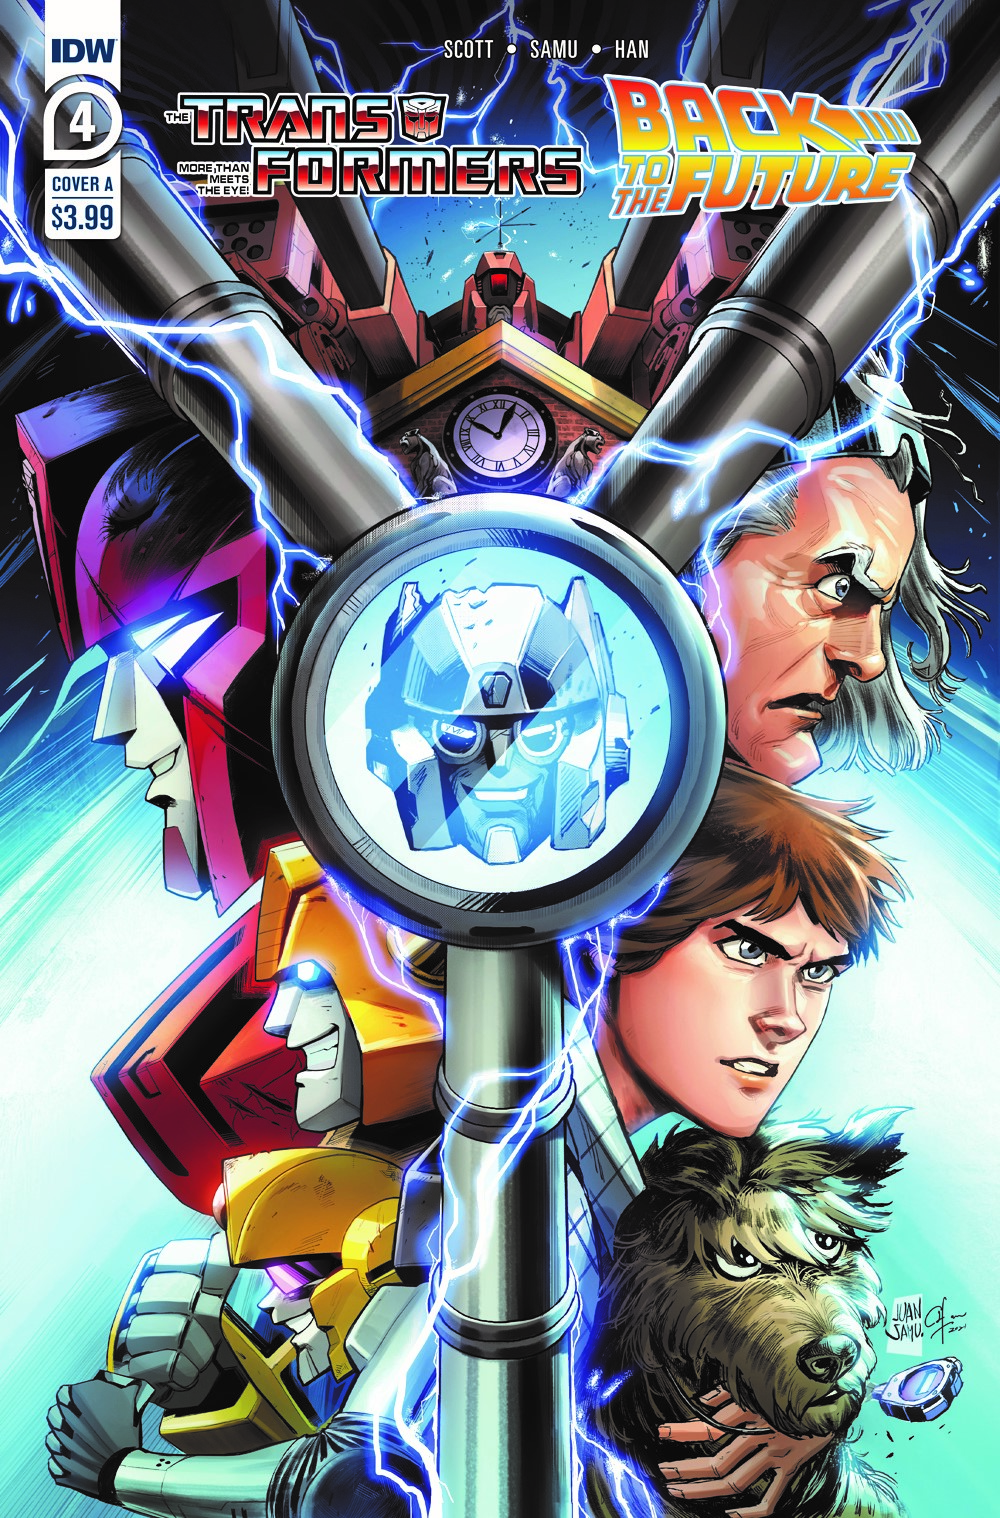 TF-BTTF04-coverA ComicList: IDW Publishing New Releases for 06/23/2021